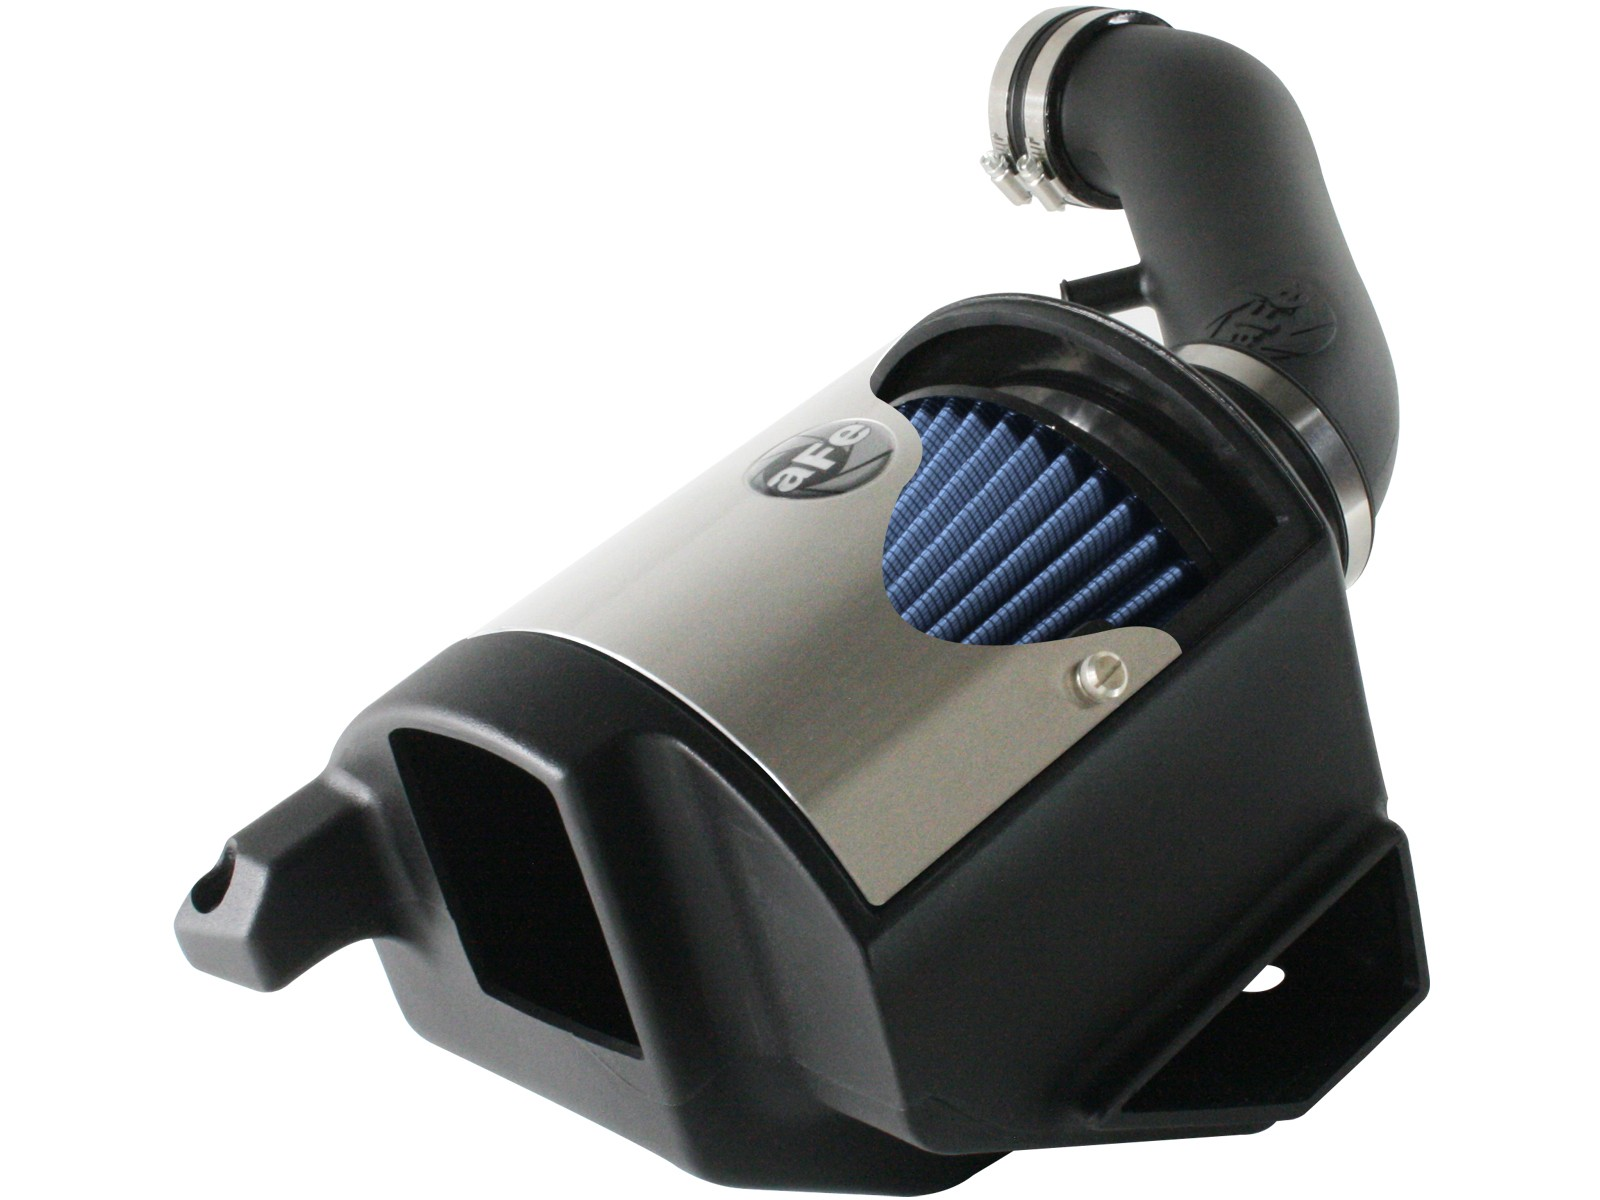 aFe POWER 54-81252 Magnum FORCE Stage-2 Si Pro 5R Cold Air Intake System